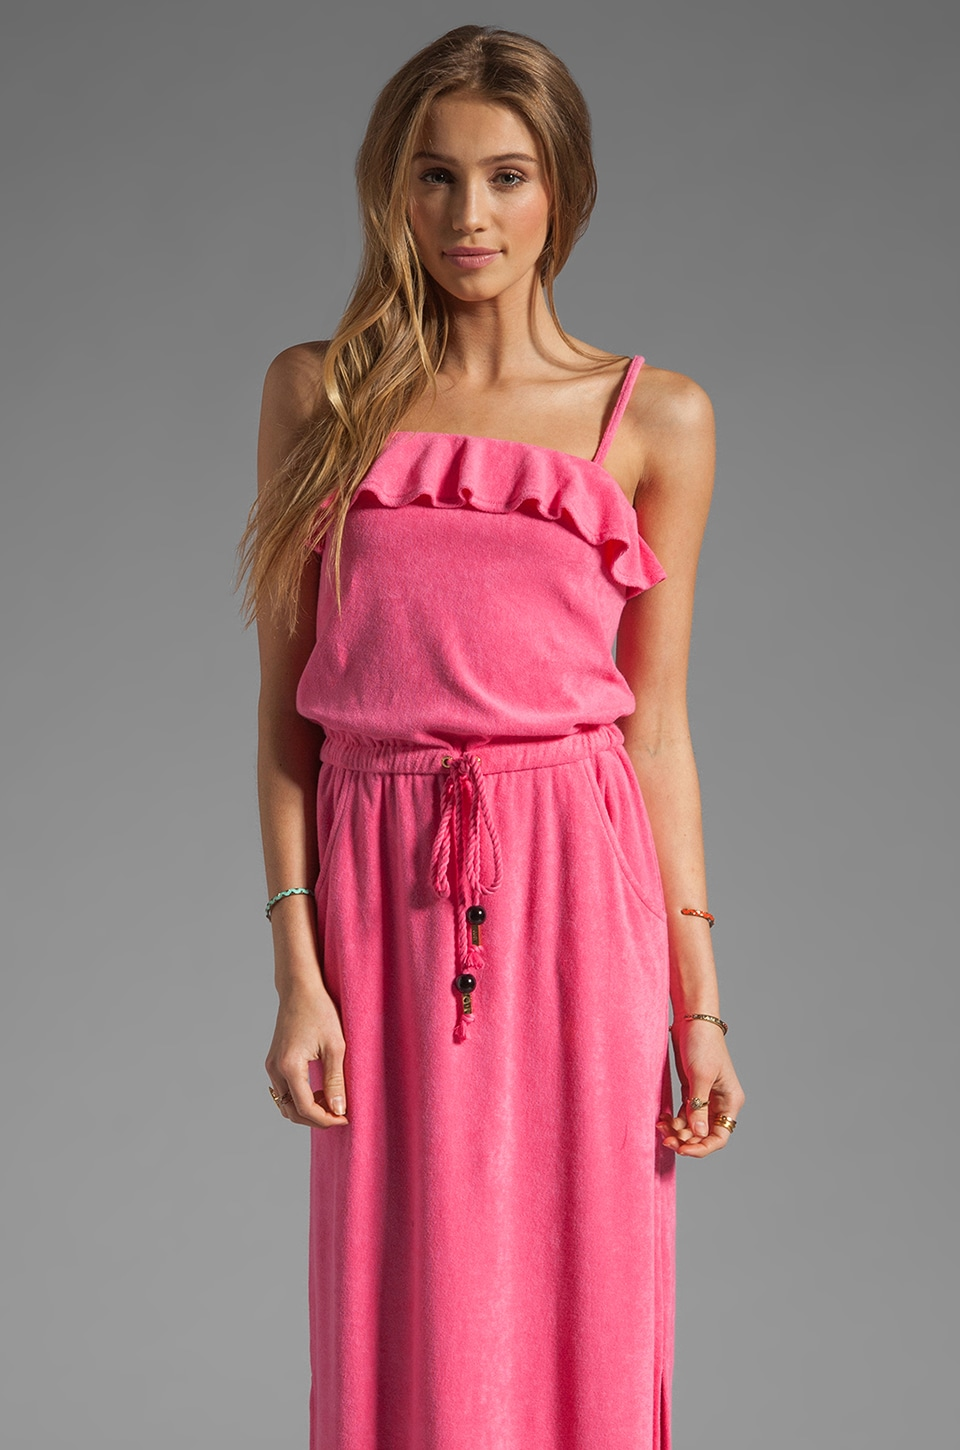 Juicy Couture Terry Maxi Dress in Passion Pink